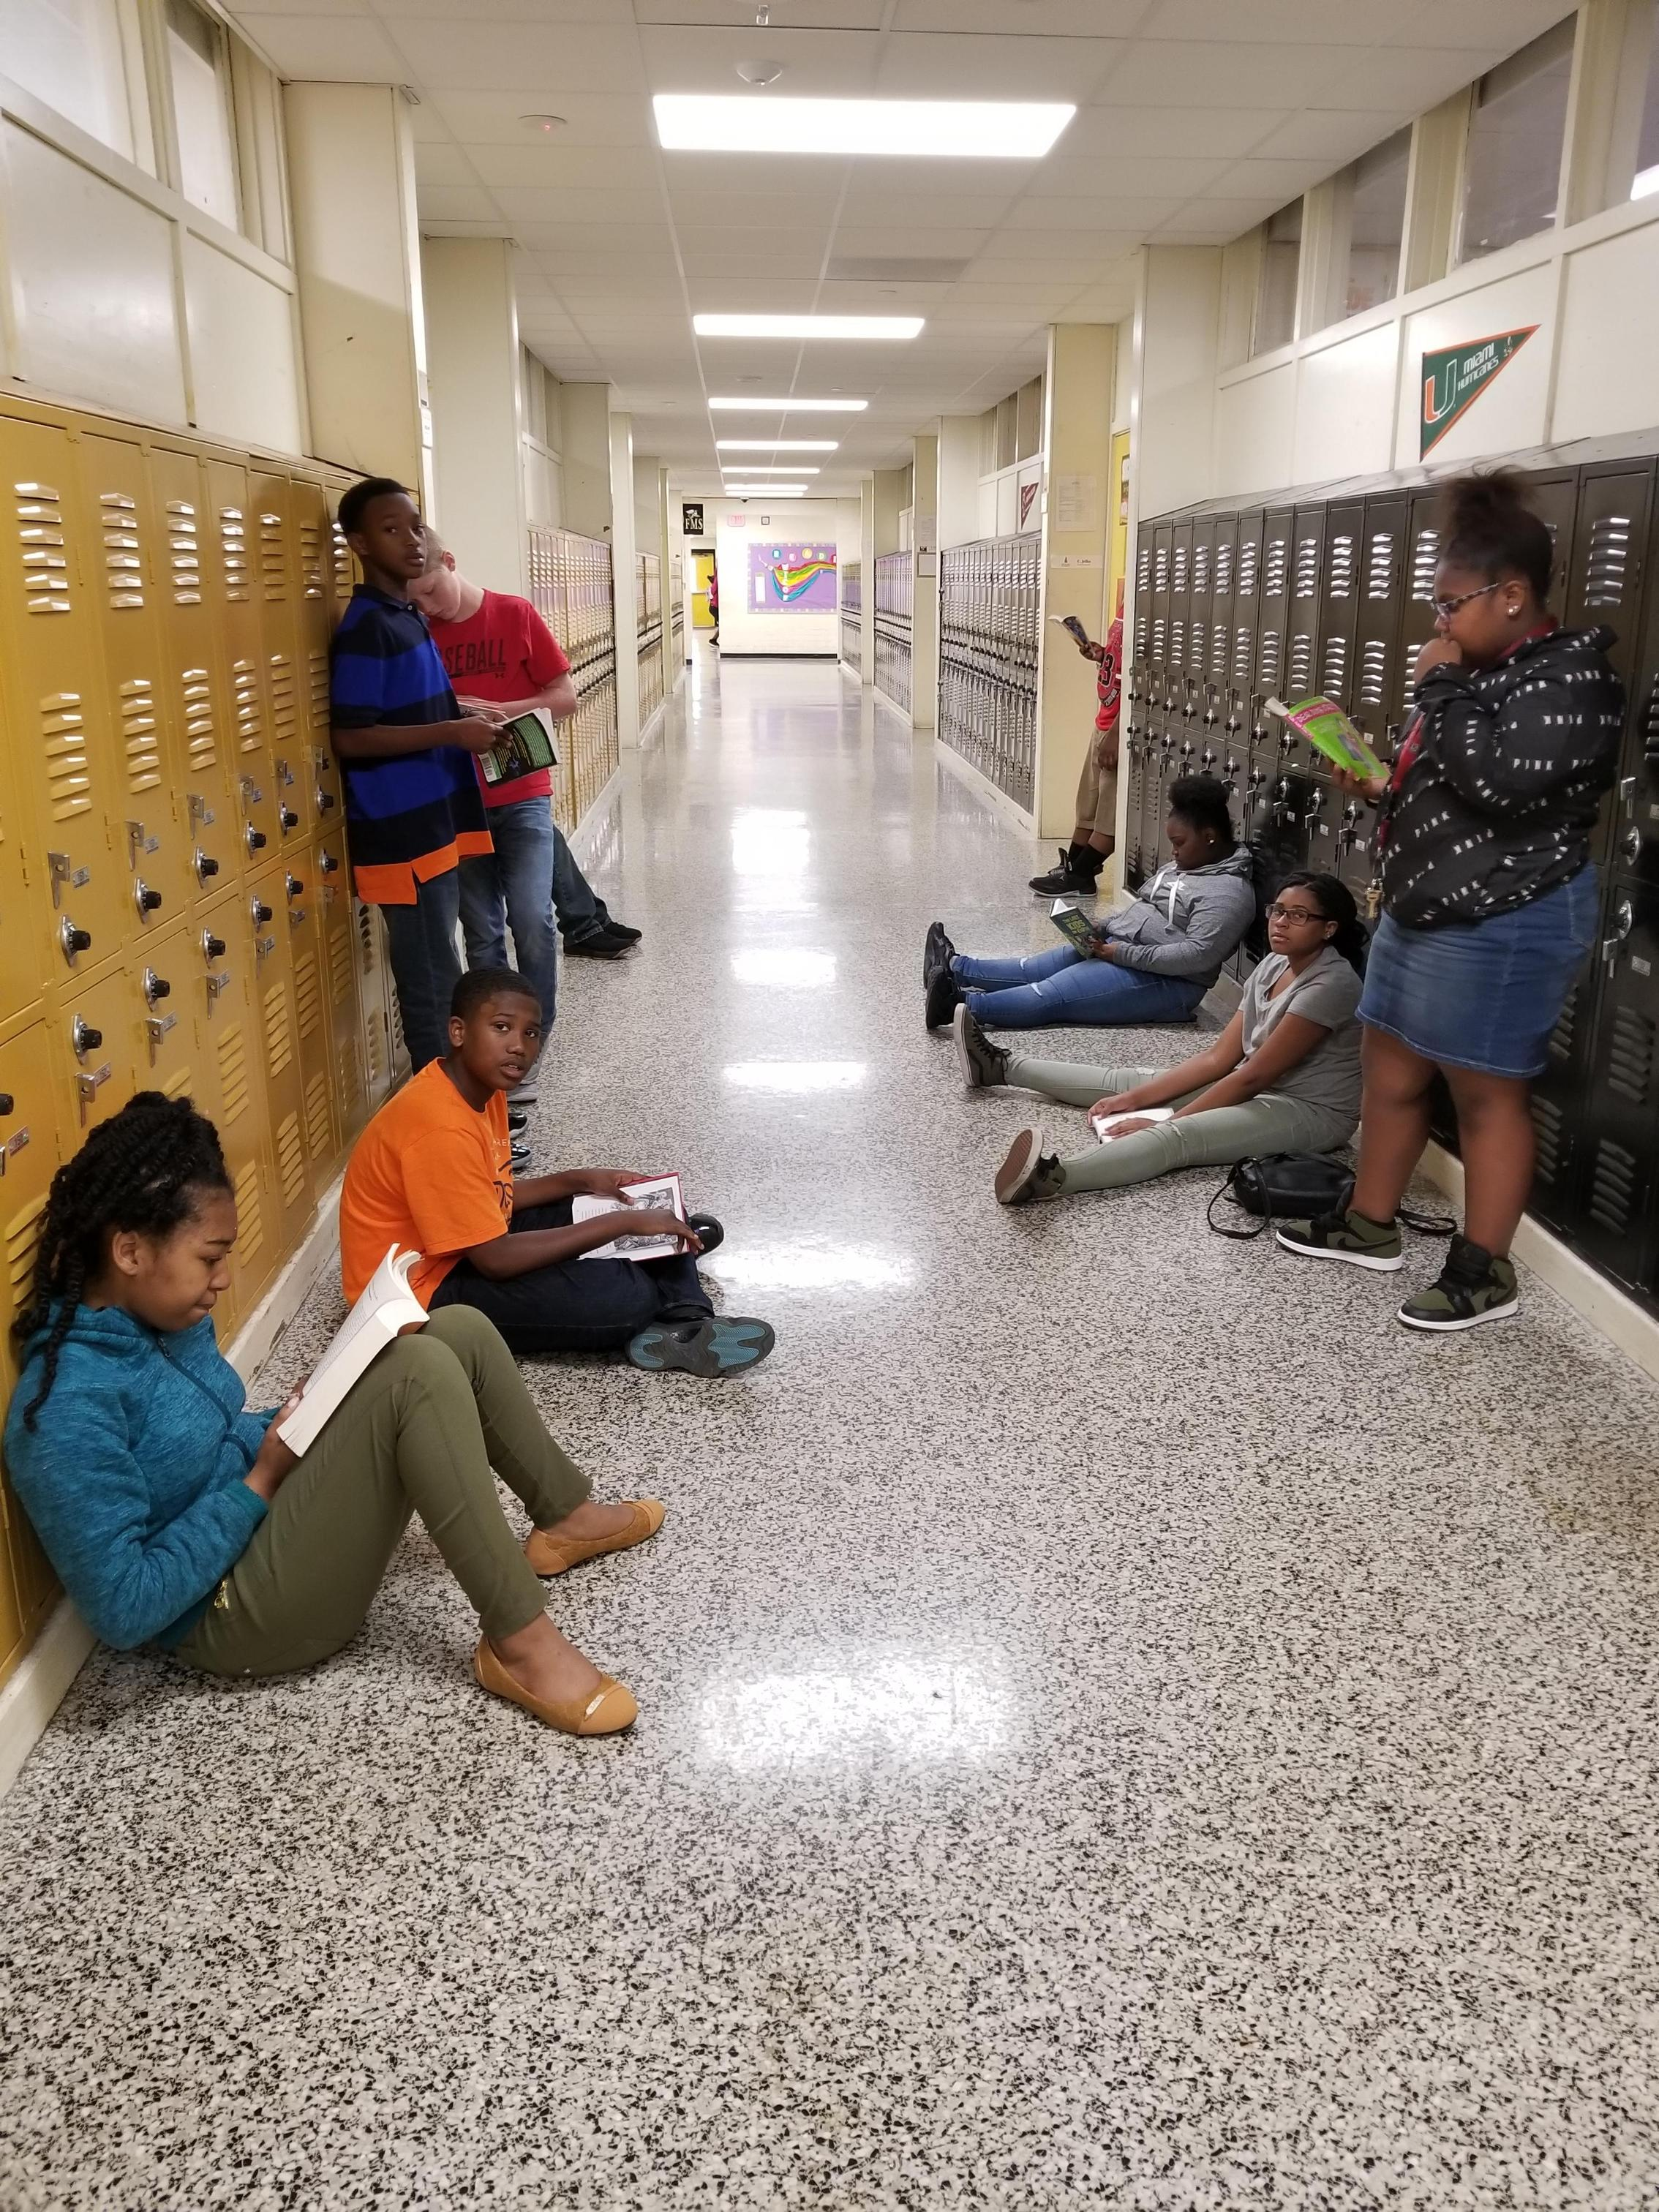 Students in hallway reading